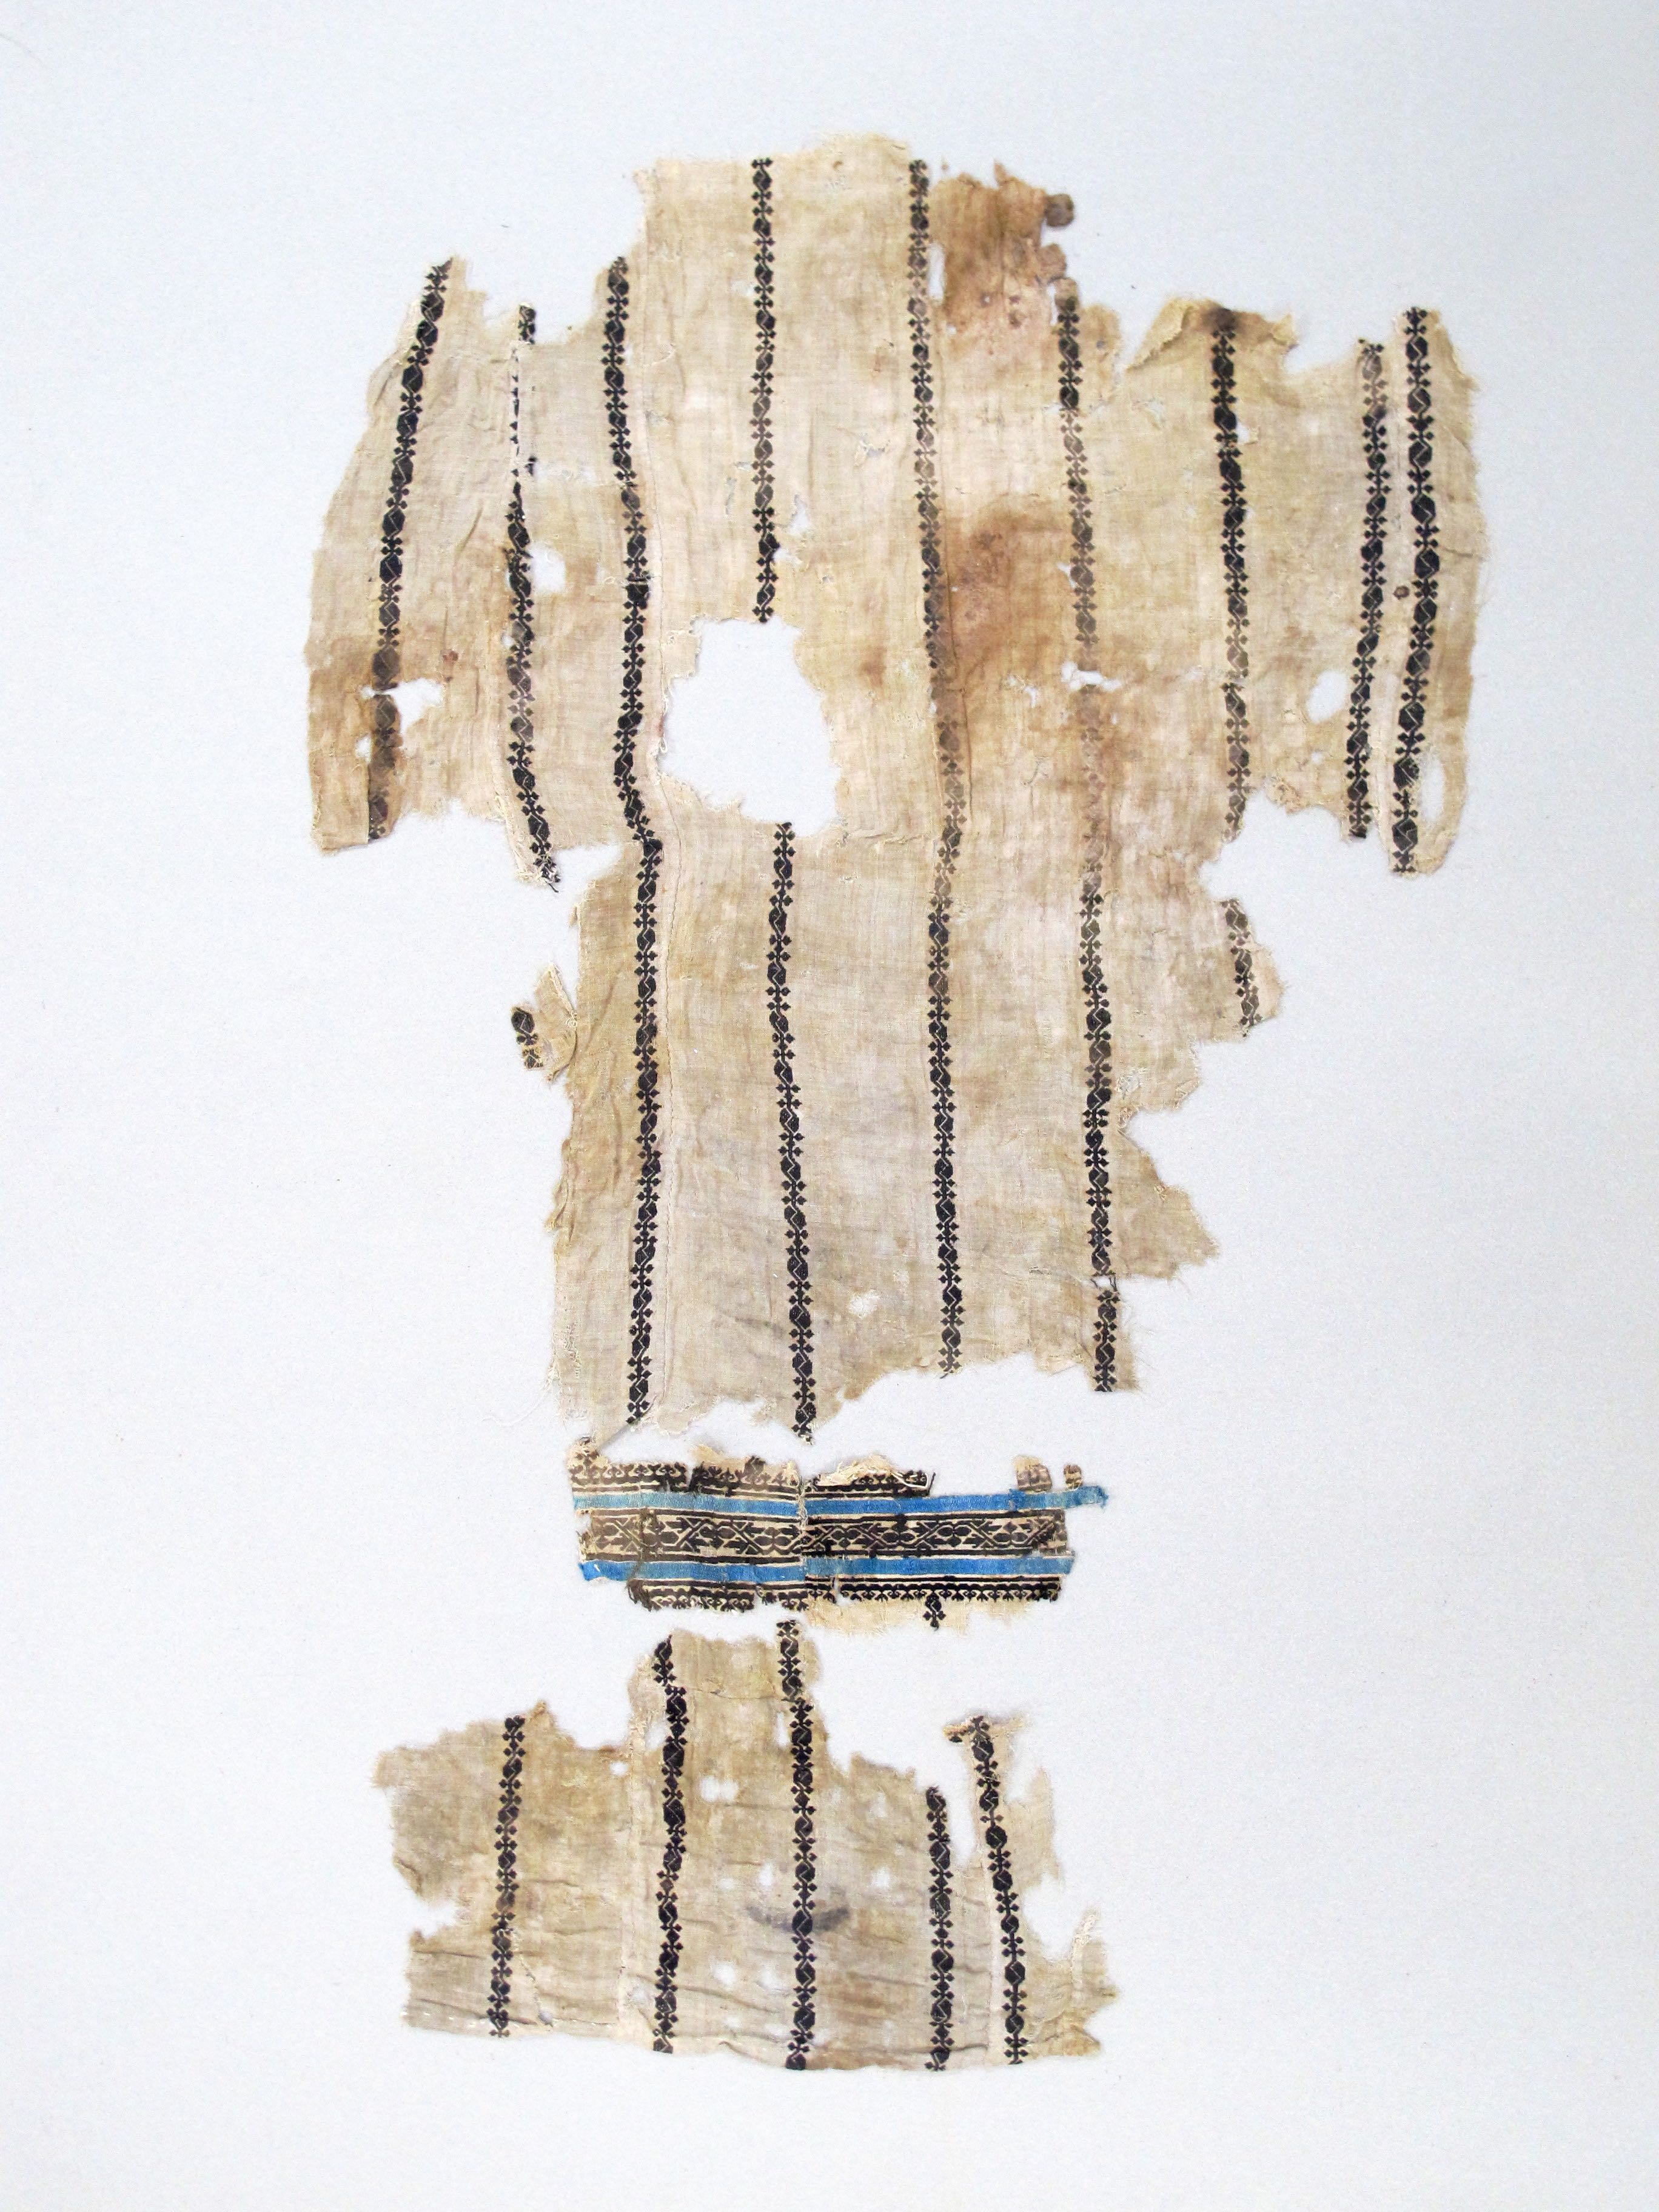 3 fragments of a tunic